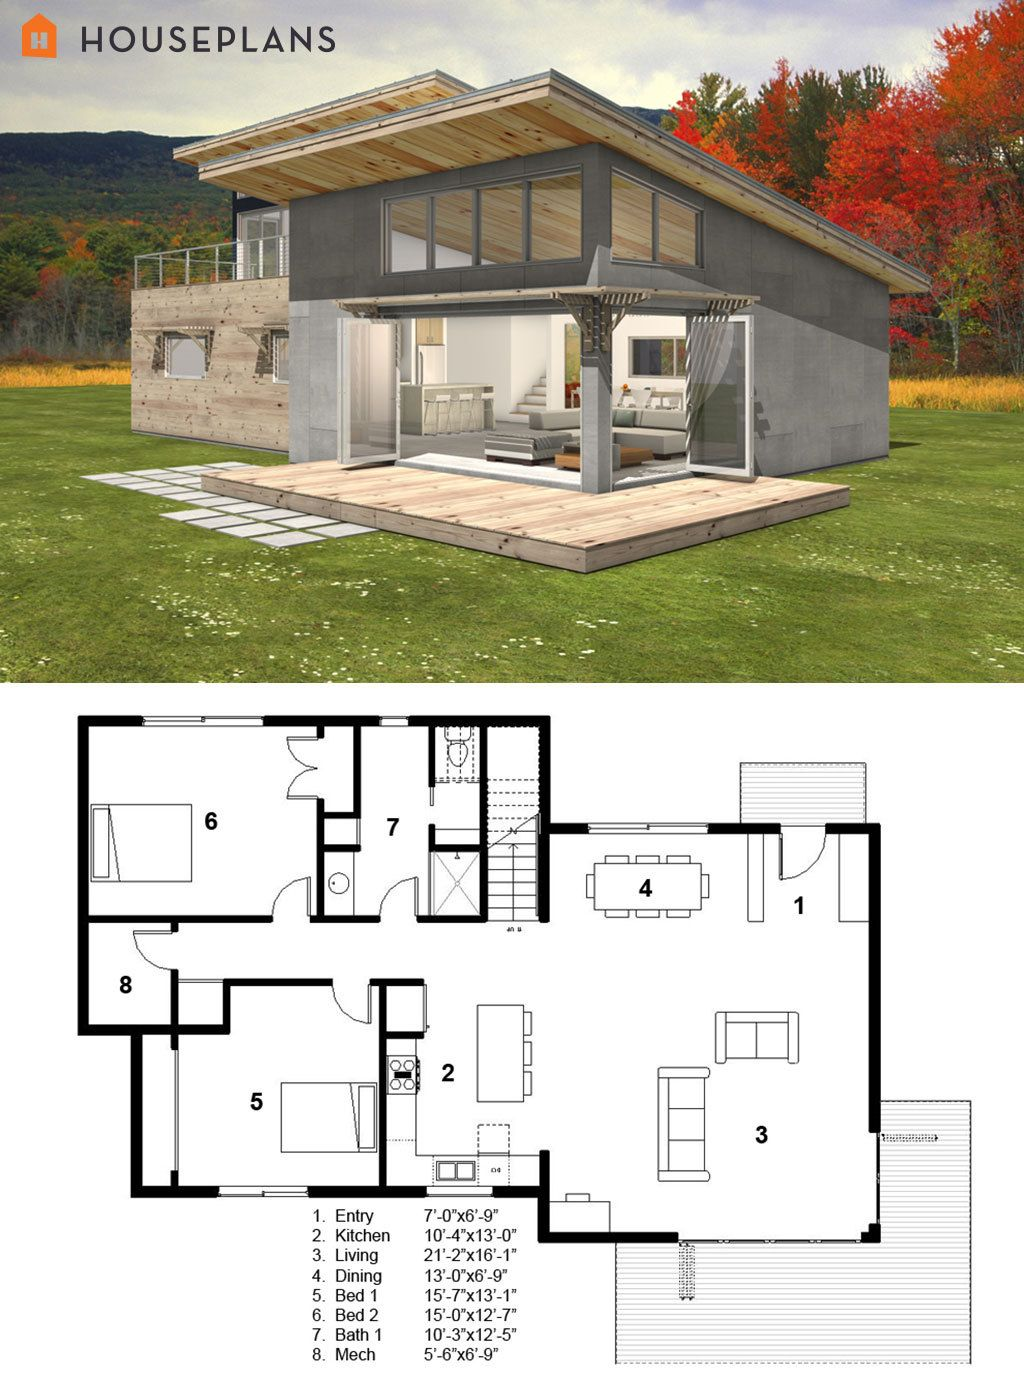 Small modern cabin house plan by freegreen energy for Modern green home plans